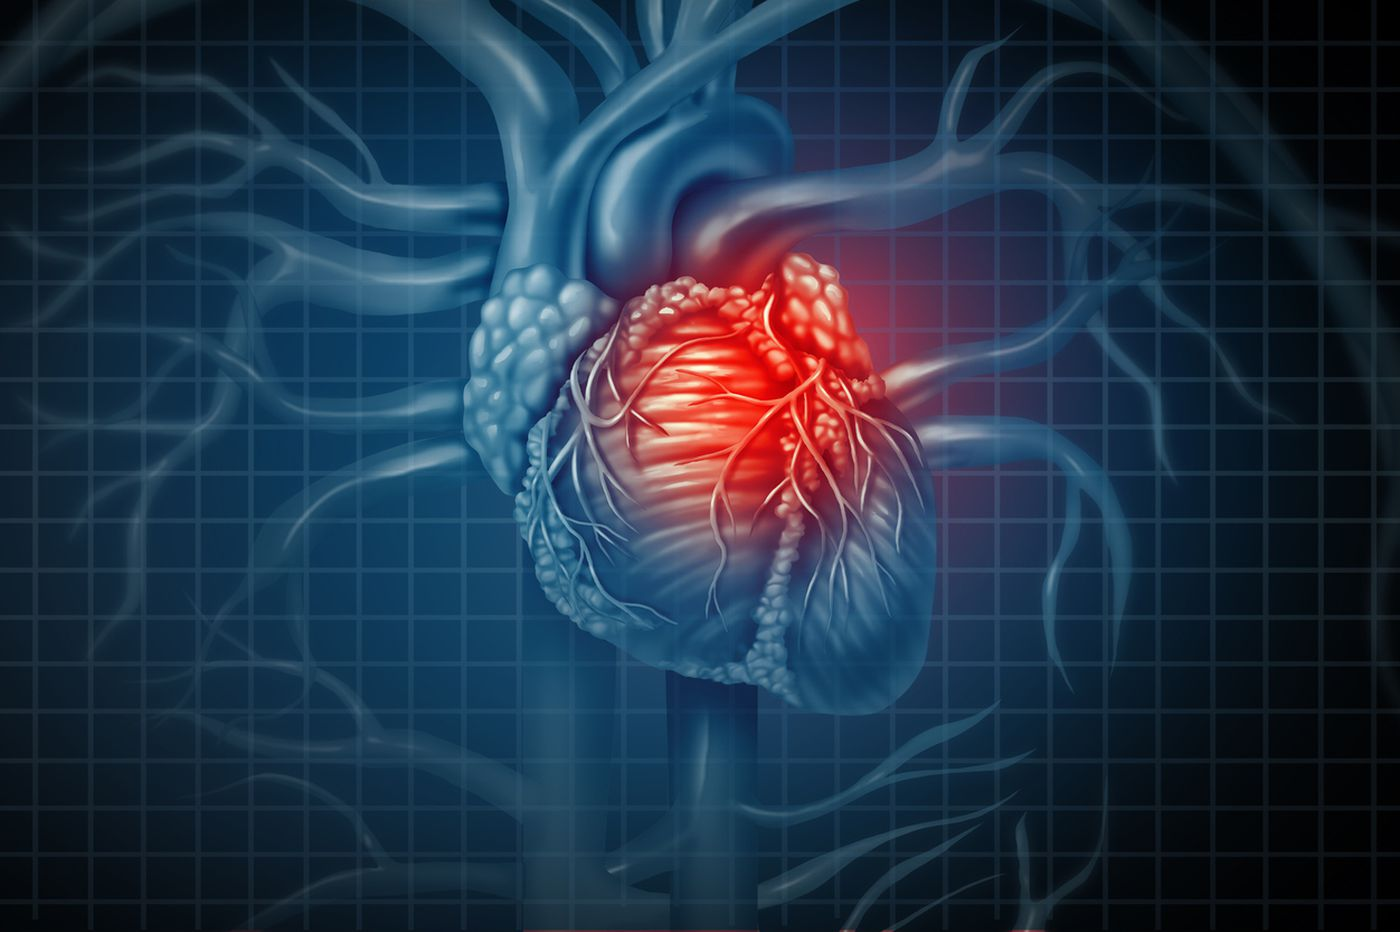 Q&A: How does stress affect my heart?